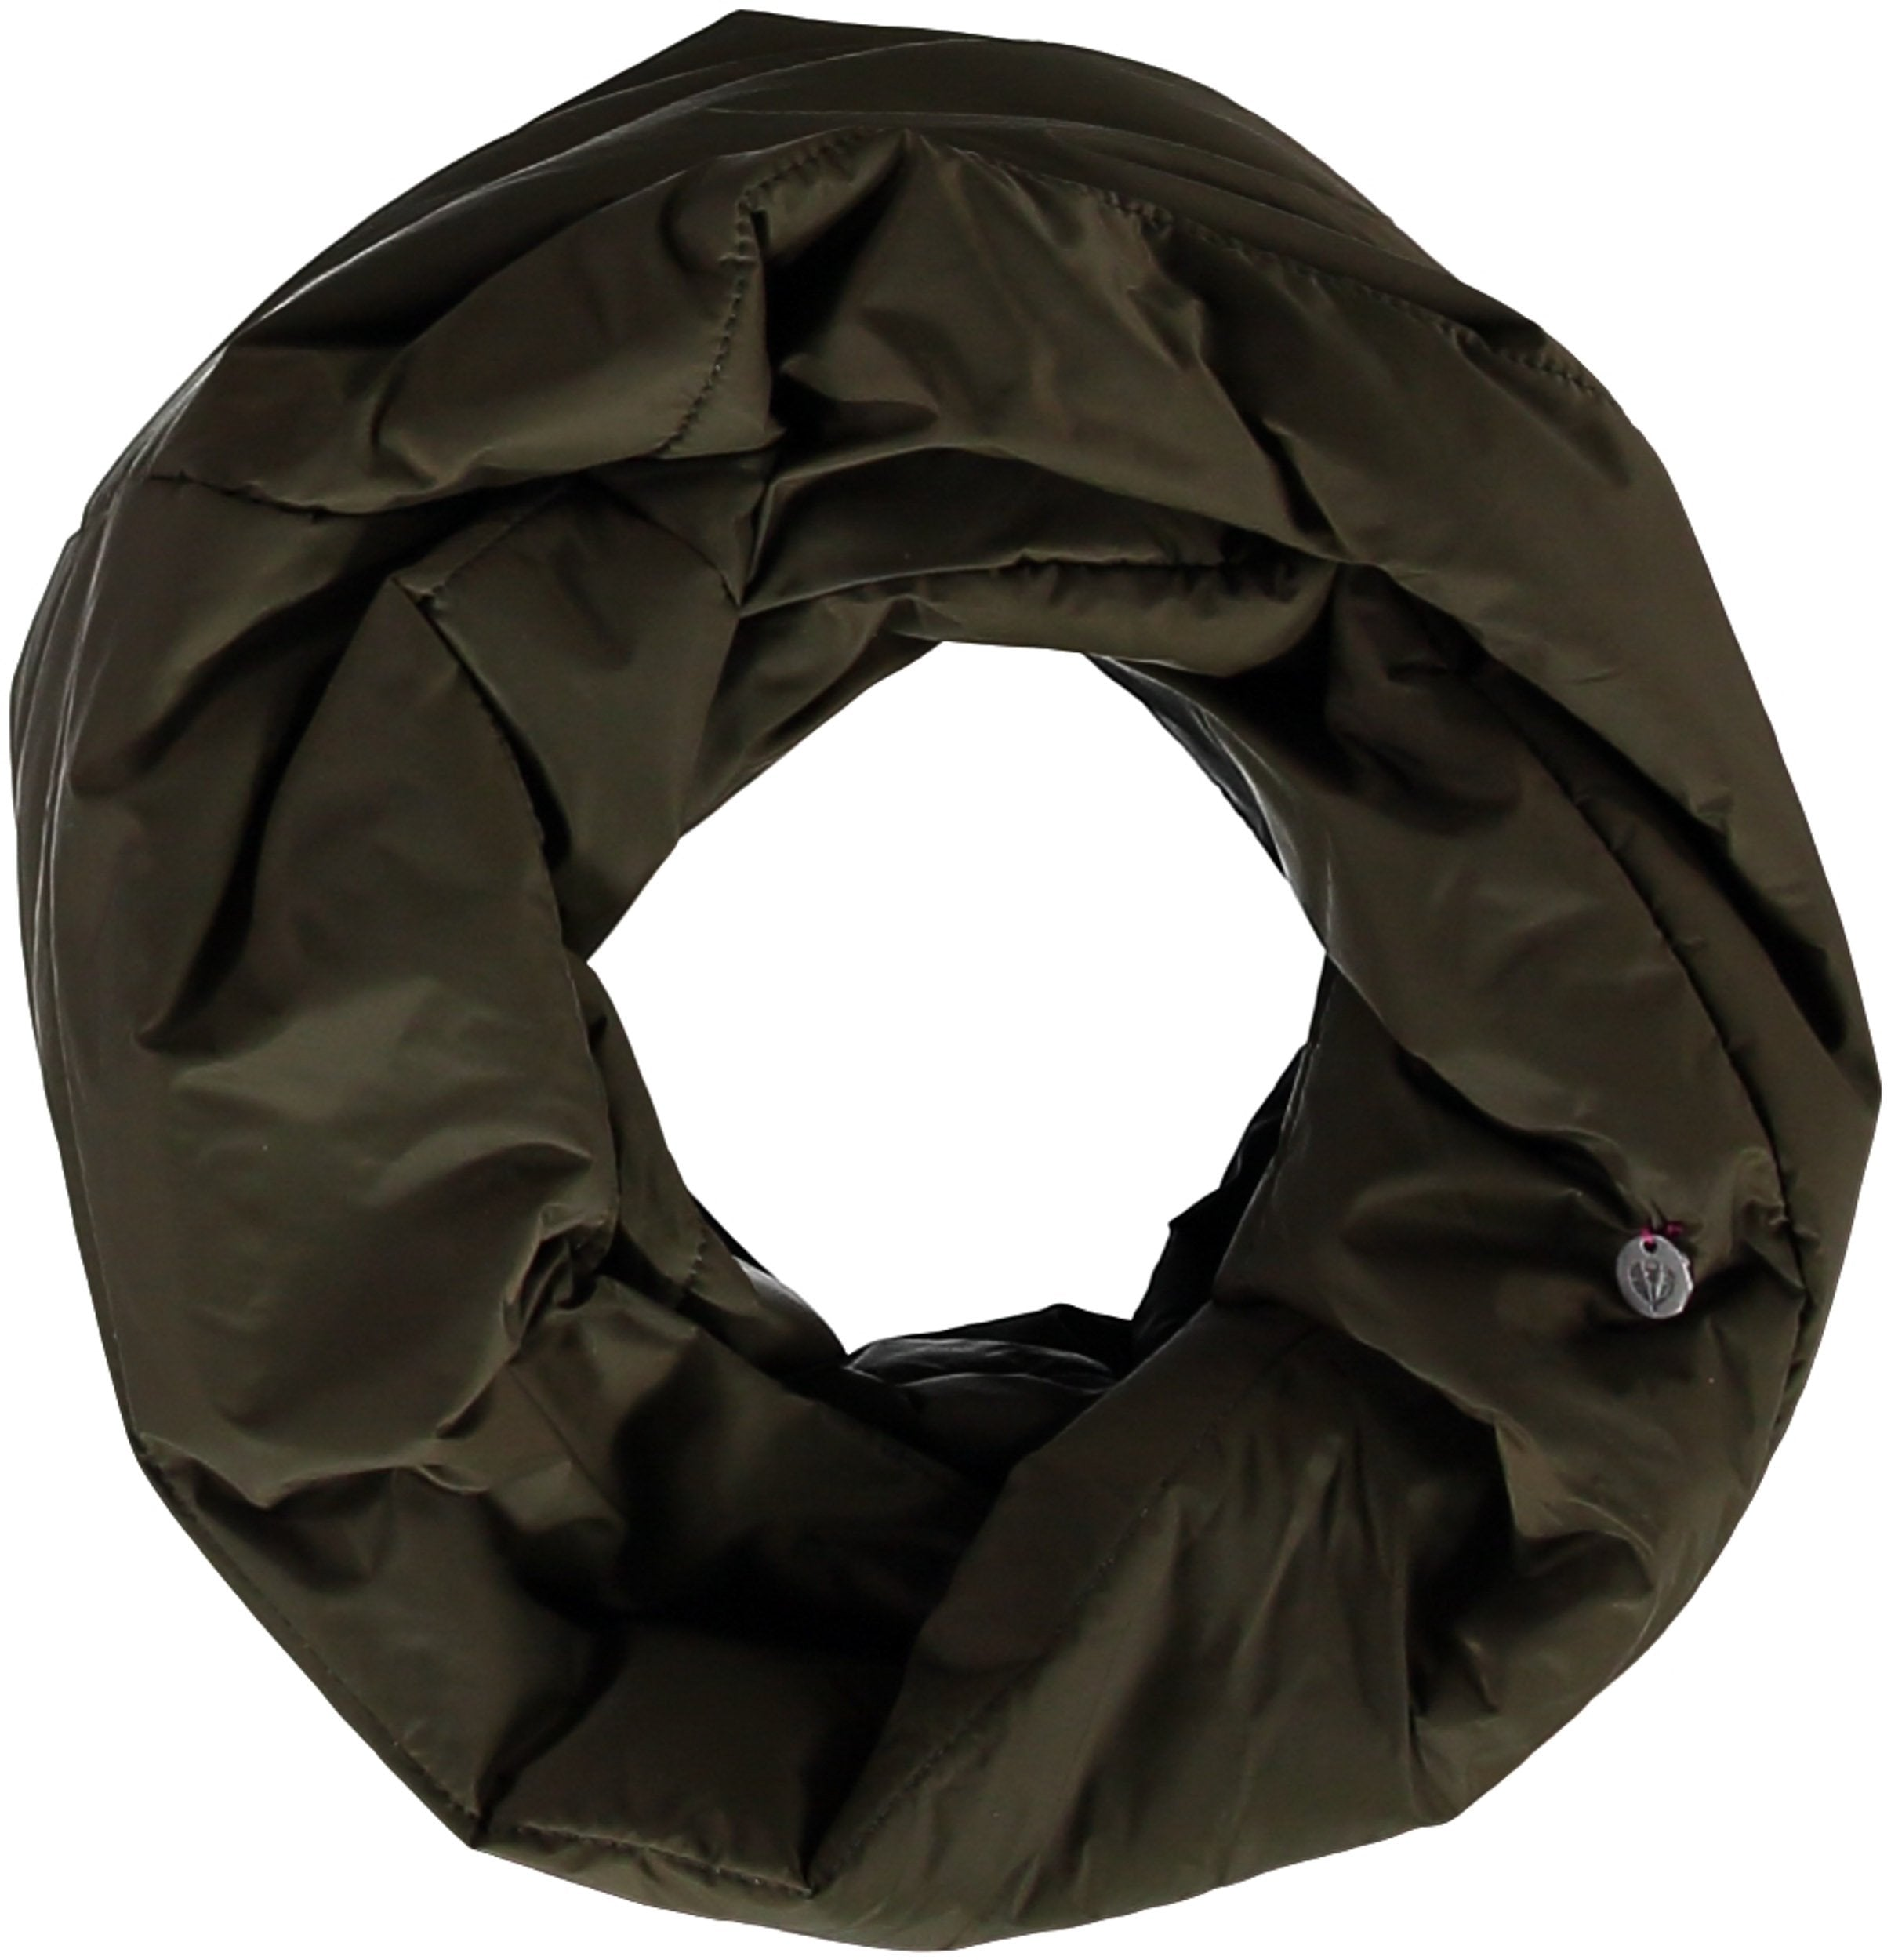 Puffa Snood Solid Color Polyfil Infinity-scarf